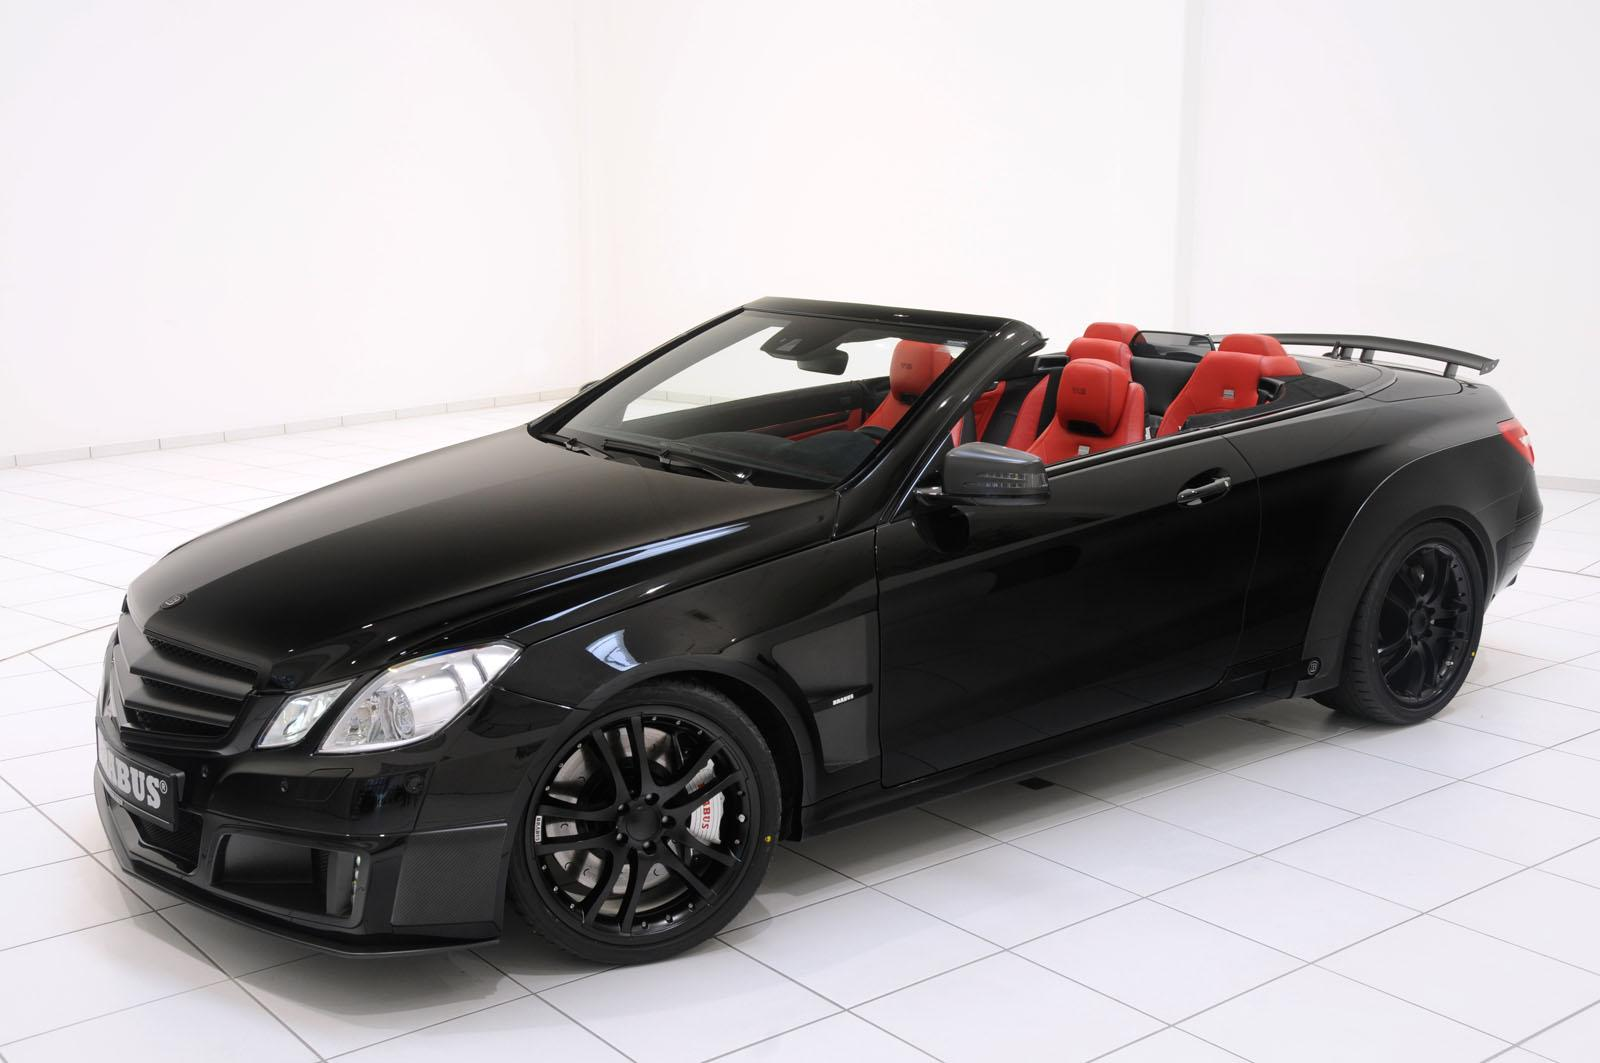 Brabus 800 e v12 cabriolet out blacks amg 39 s black series for Drop top mercedes benz prices